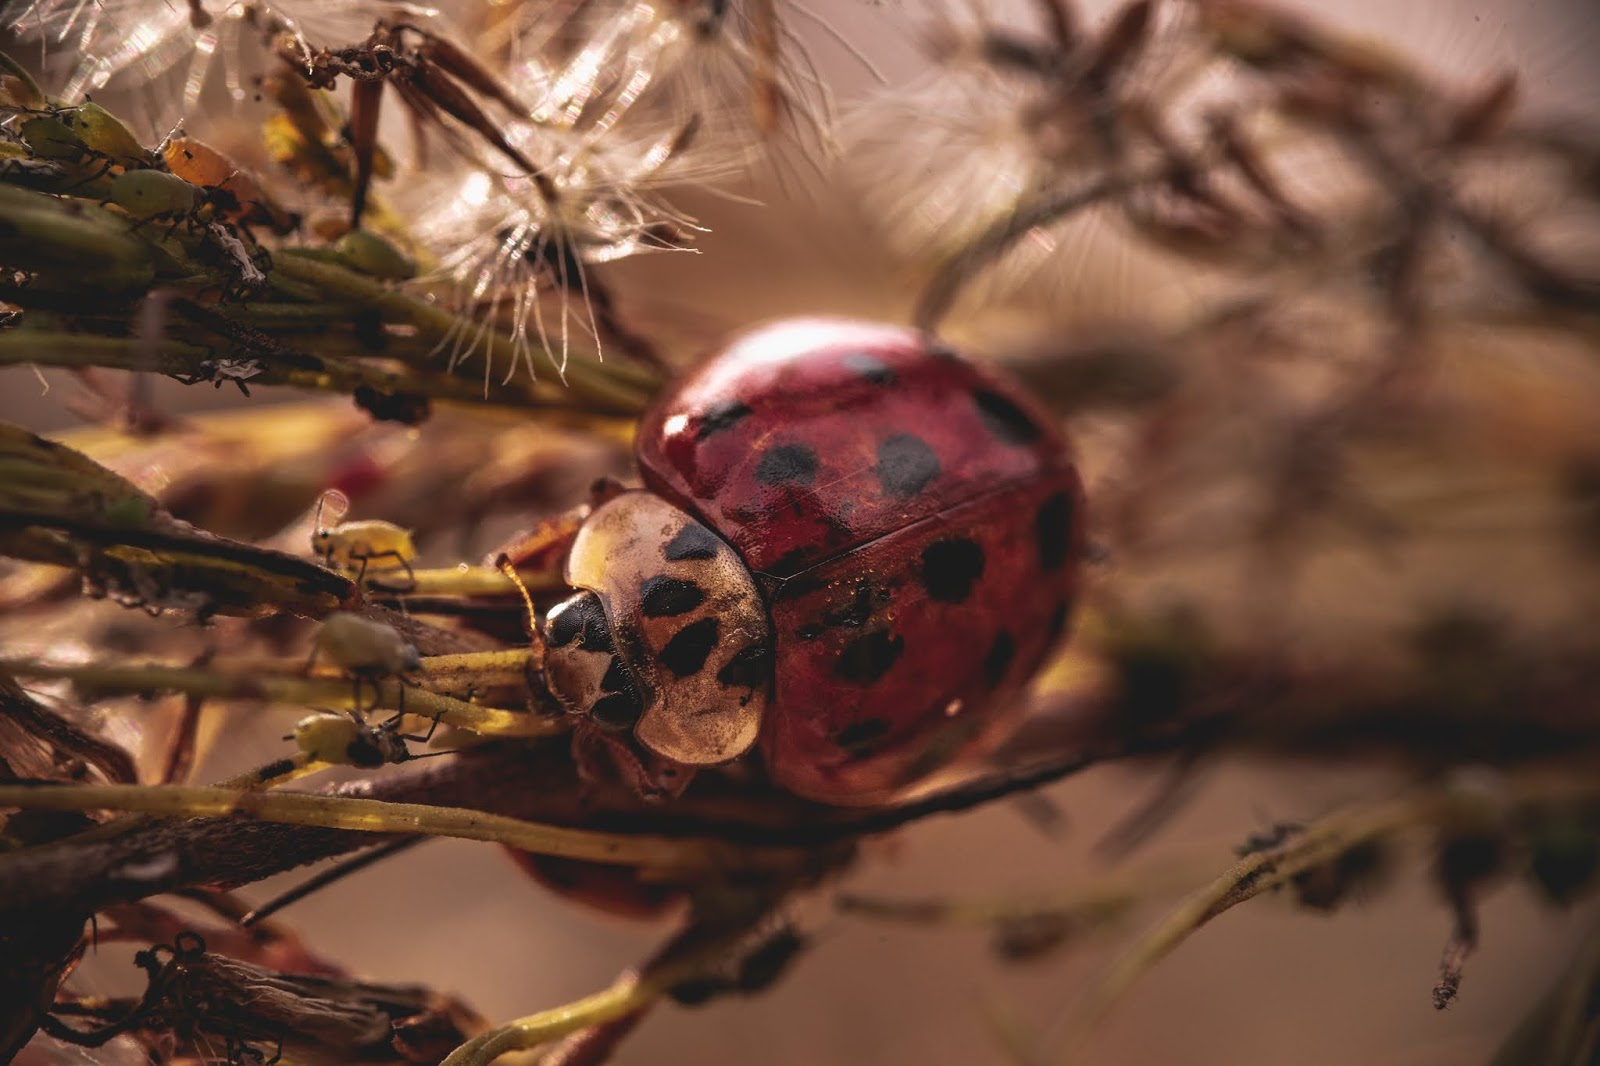 Free download nature photography of a ladybug on a leaf in the garden.